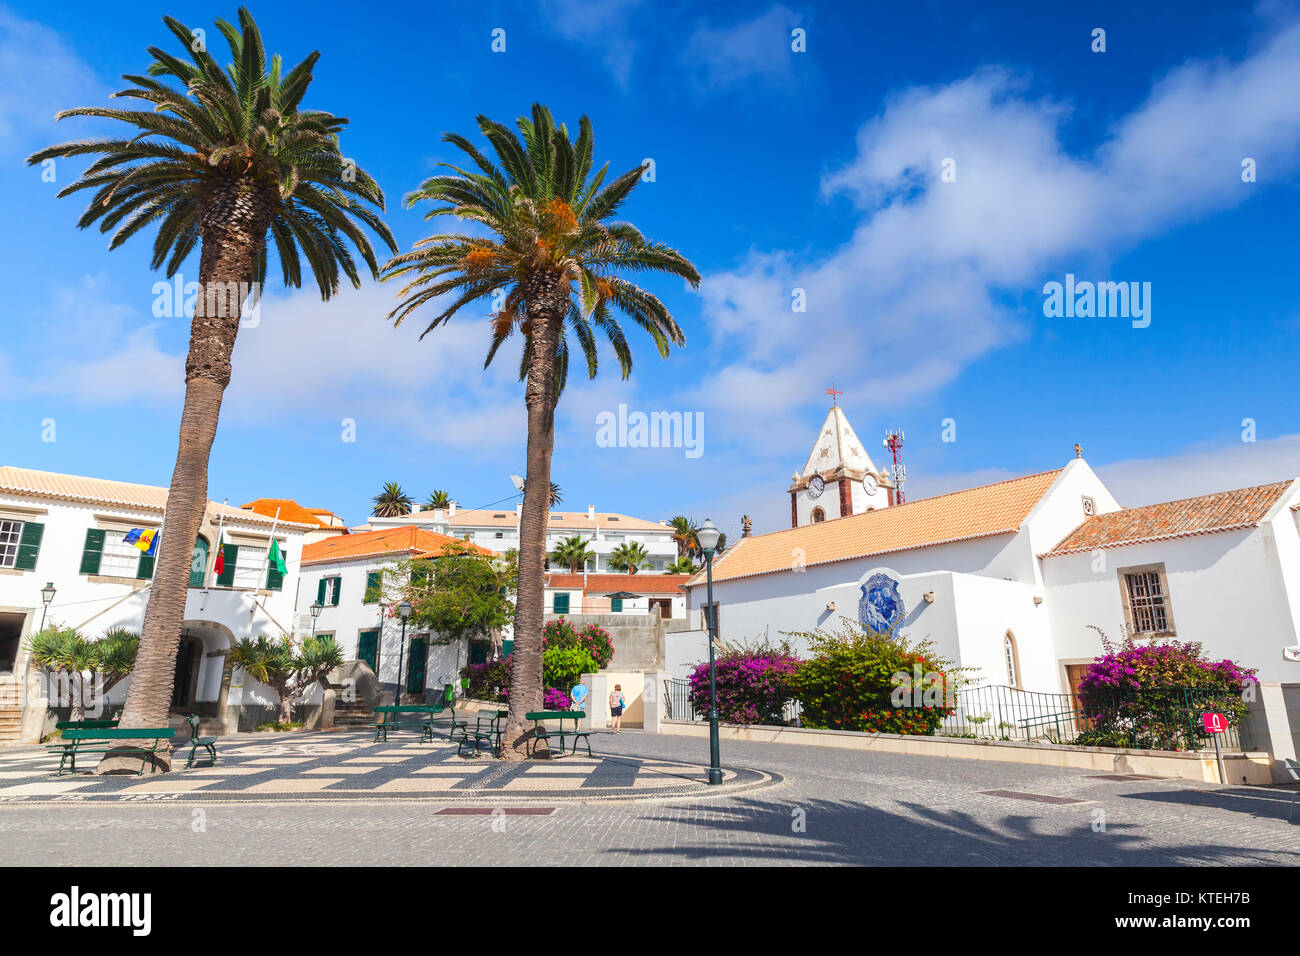 Vila Baleira, Portugal - August 18, 2017: Street view of Vila Baleira center the only city and the capital of Porto - Stock Image